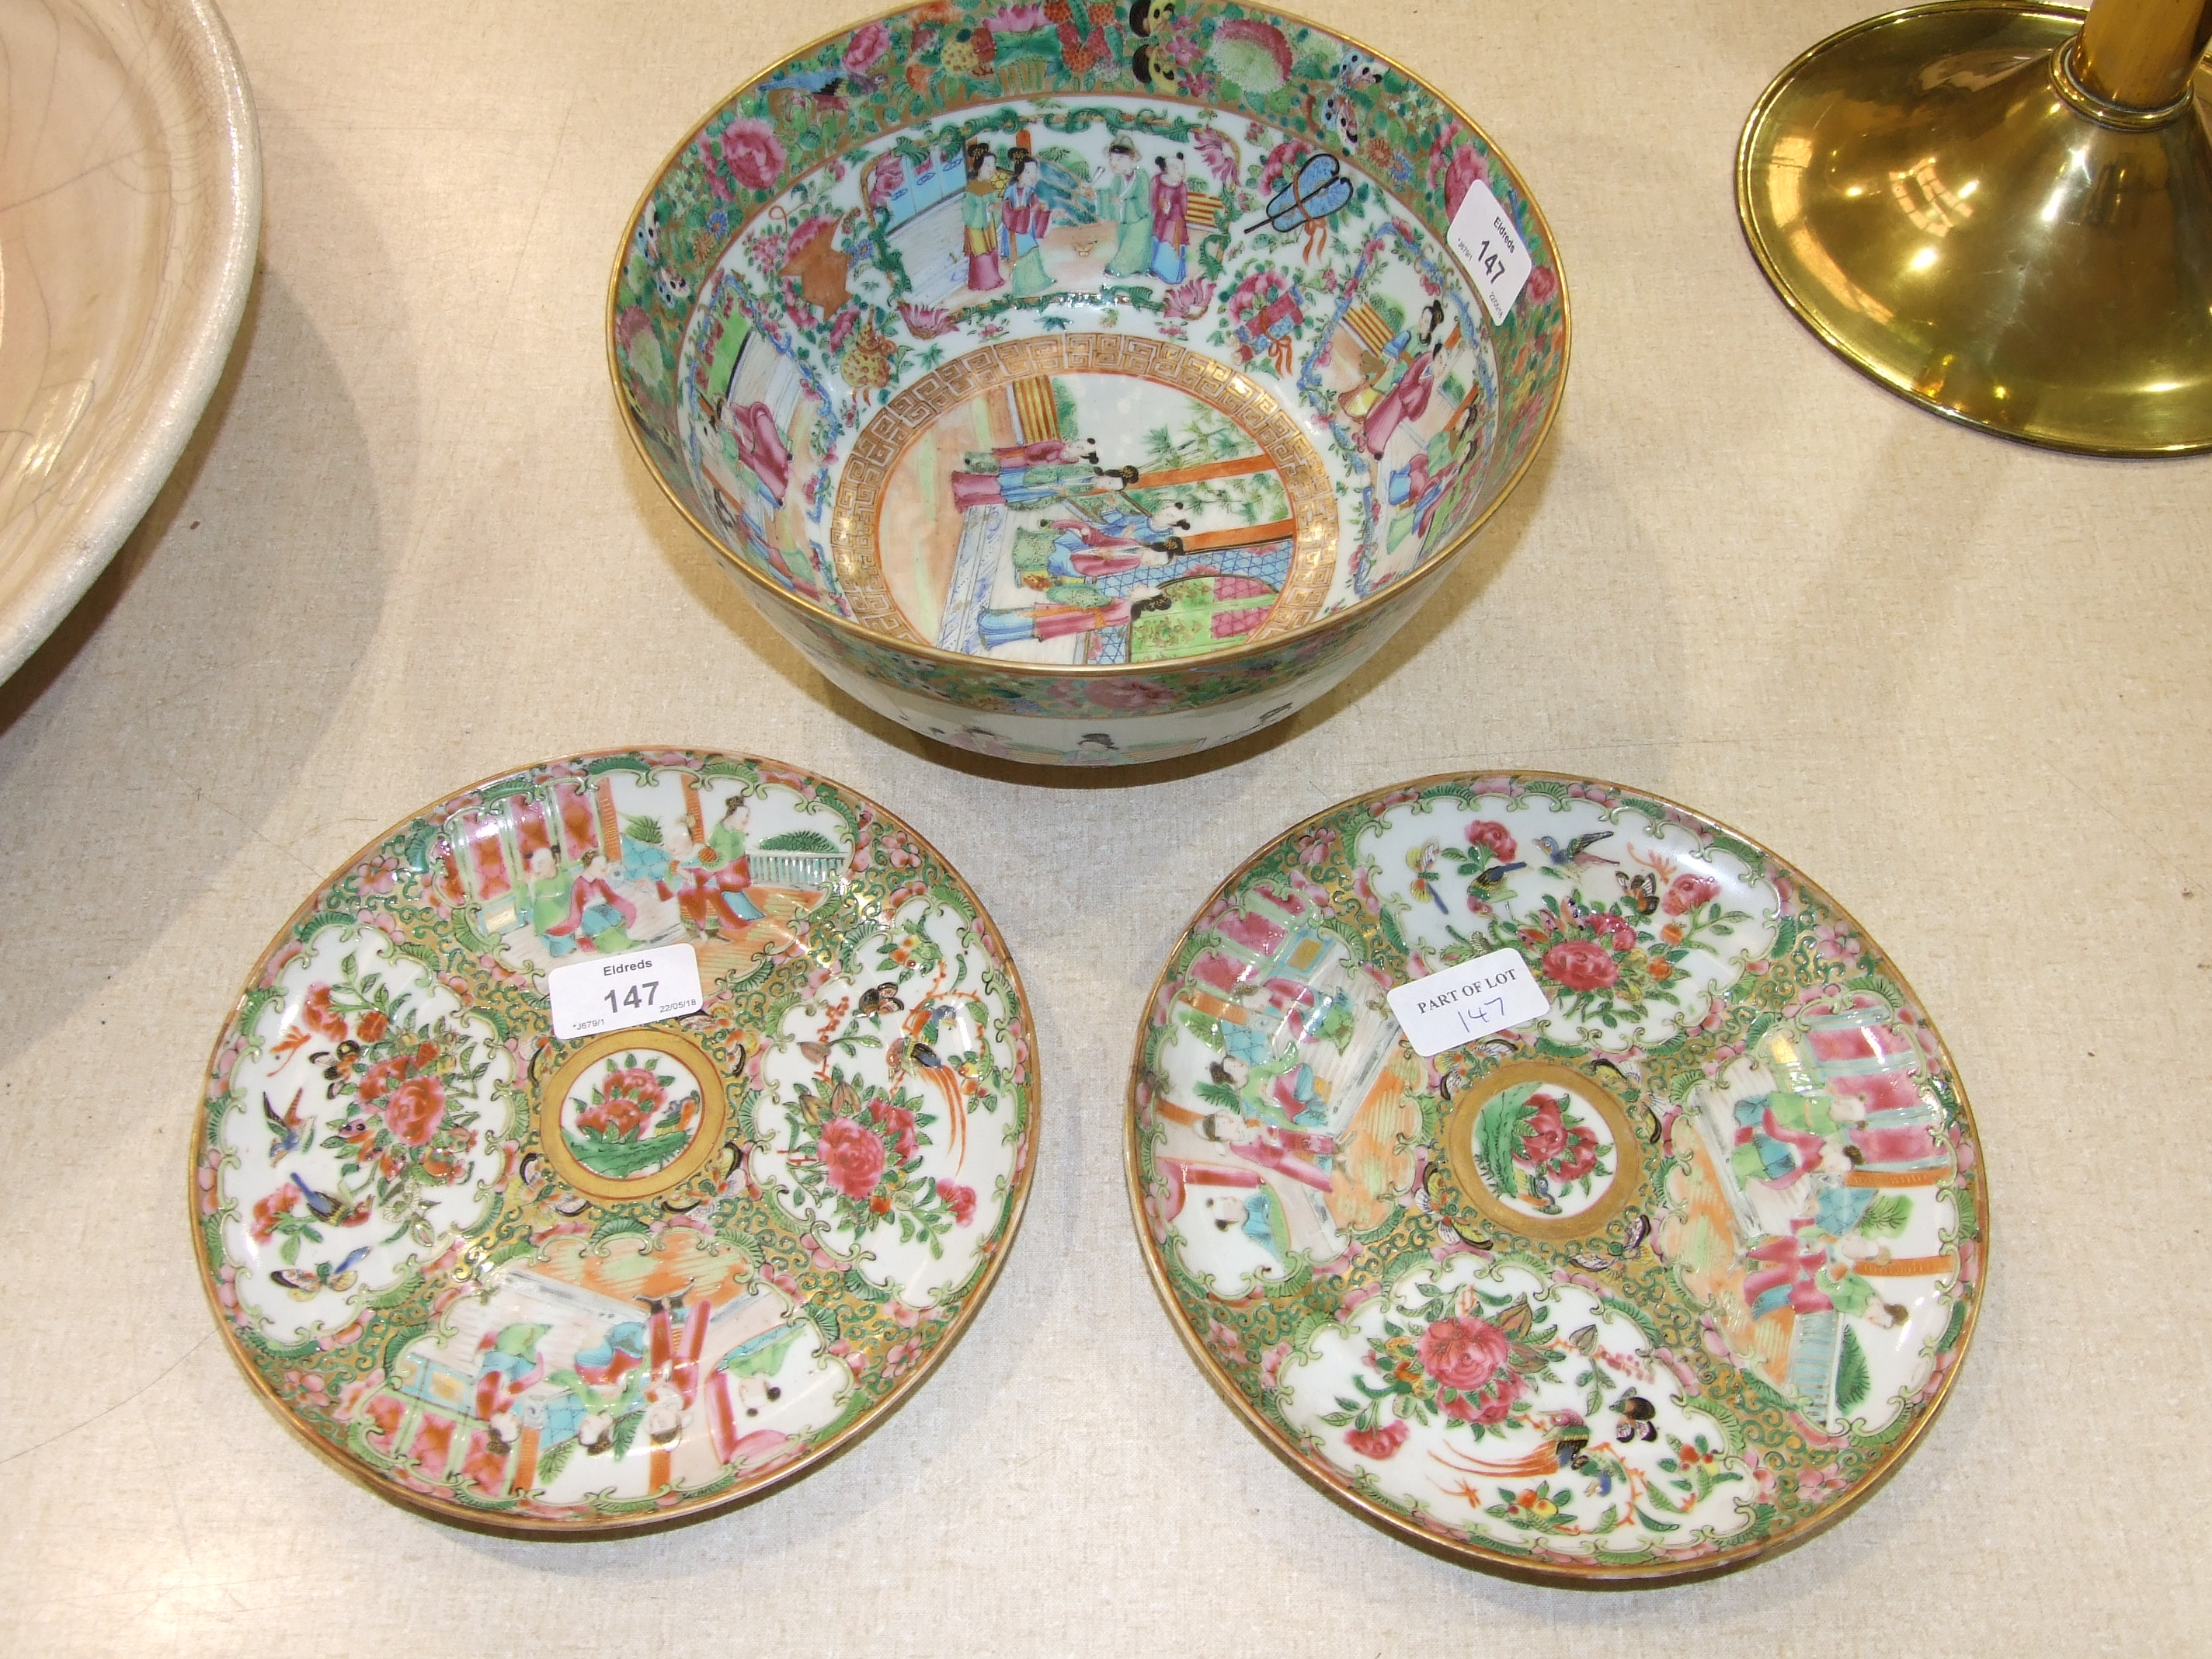 Lot 147 - A Canton bowl, typically-decorated with panels of figures within a border of flowers, birds and